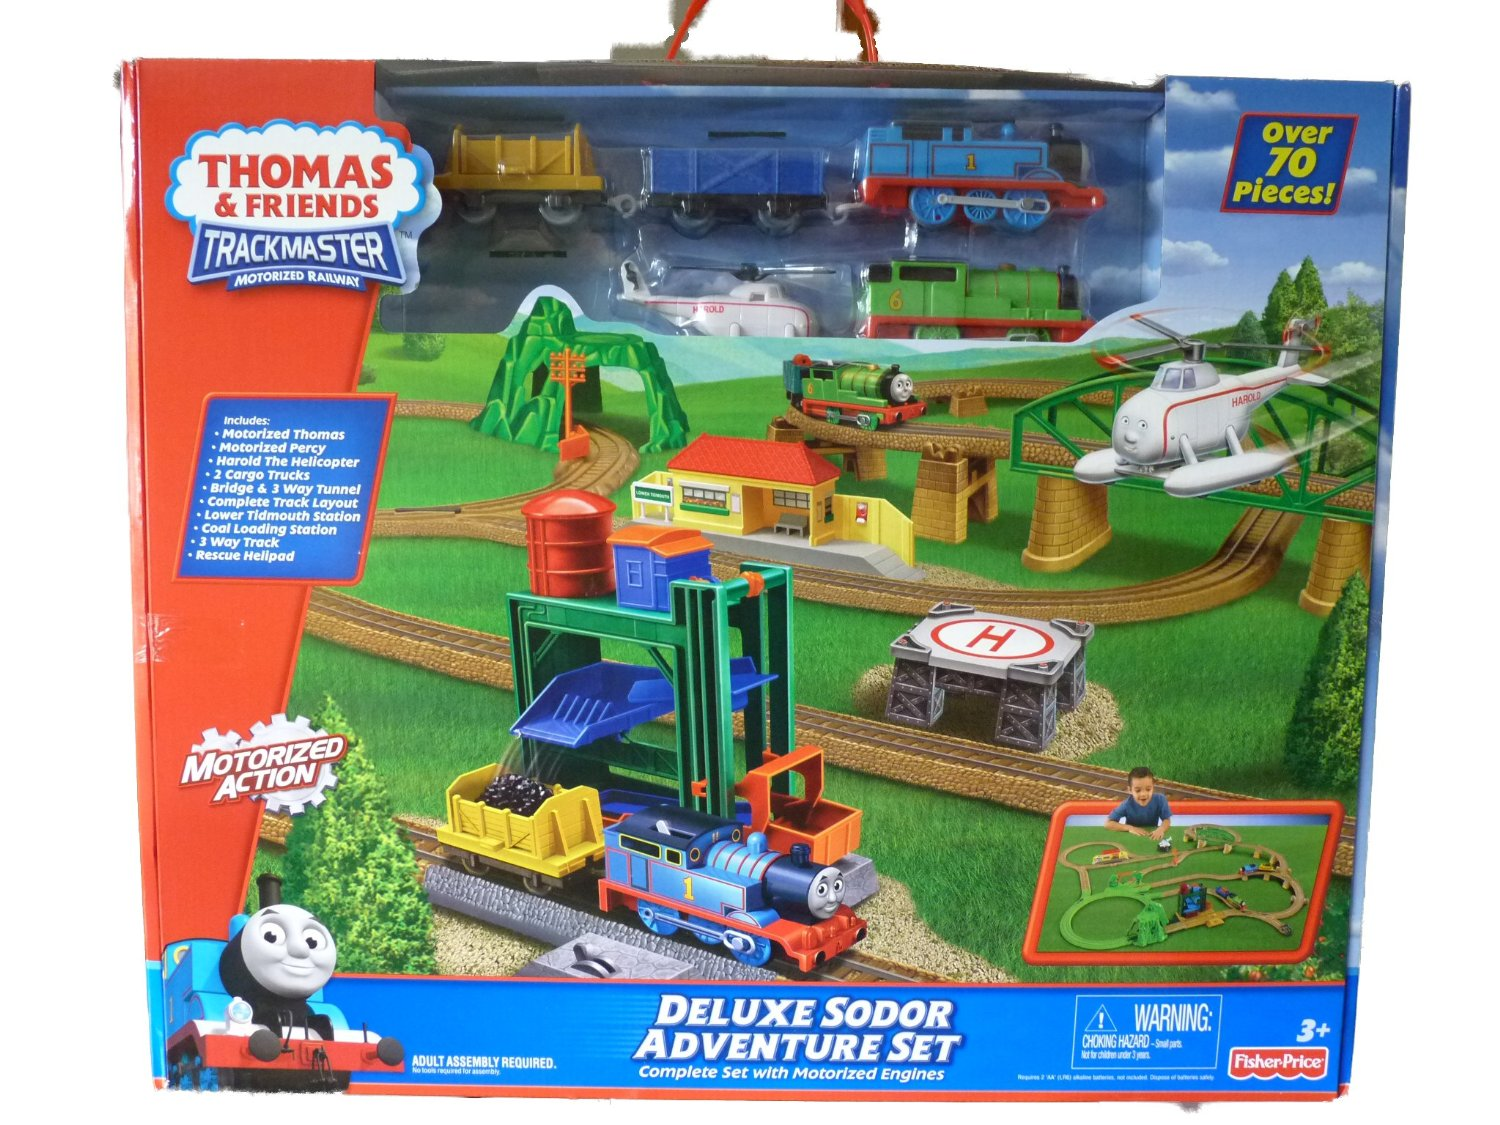 Deluxe sodor adventure set thomas and friends trackmaster wiki fandom powered by wikia - The sky pool a deluxe adventure ...